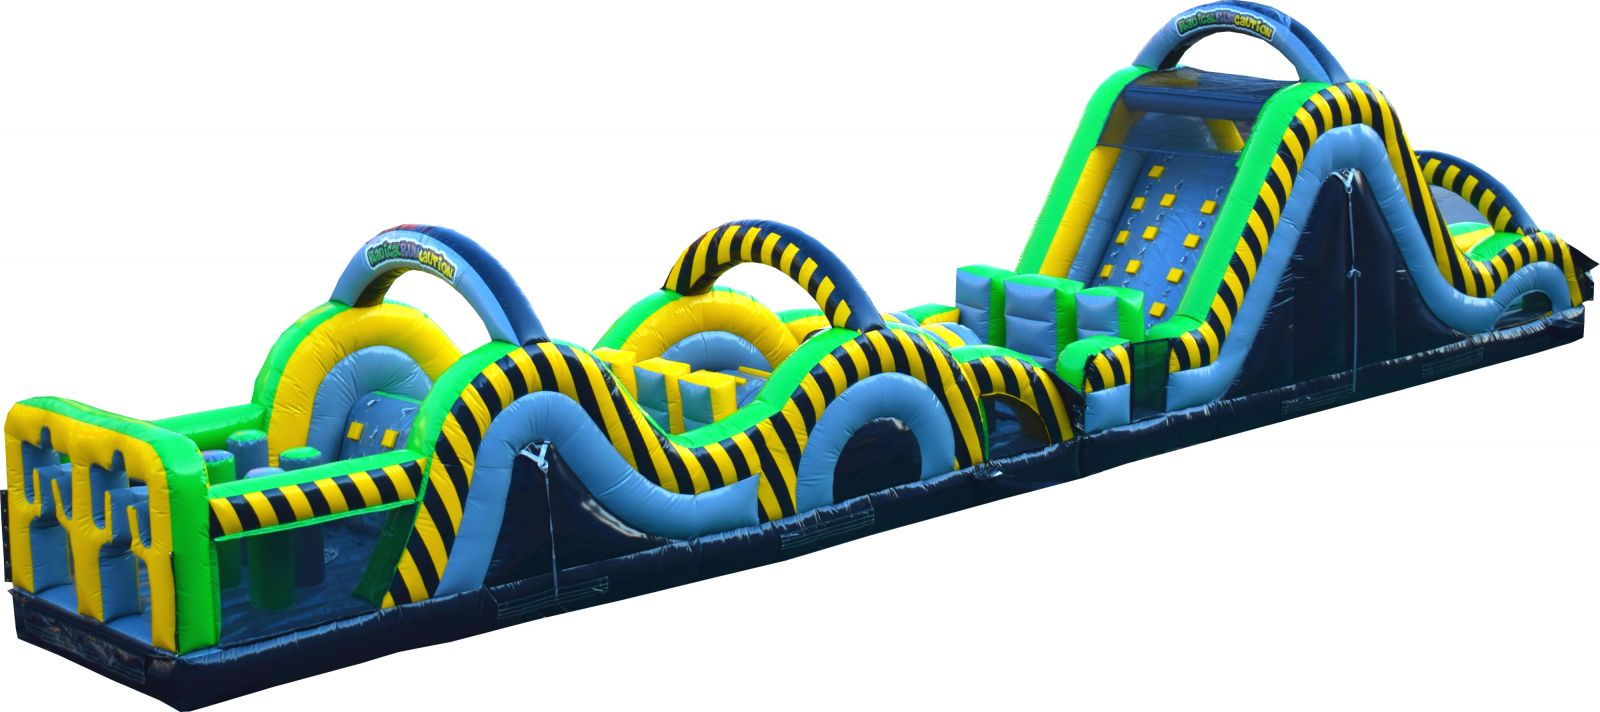 ninja warrior inflatable obstacle course rental in jacksonville FL